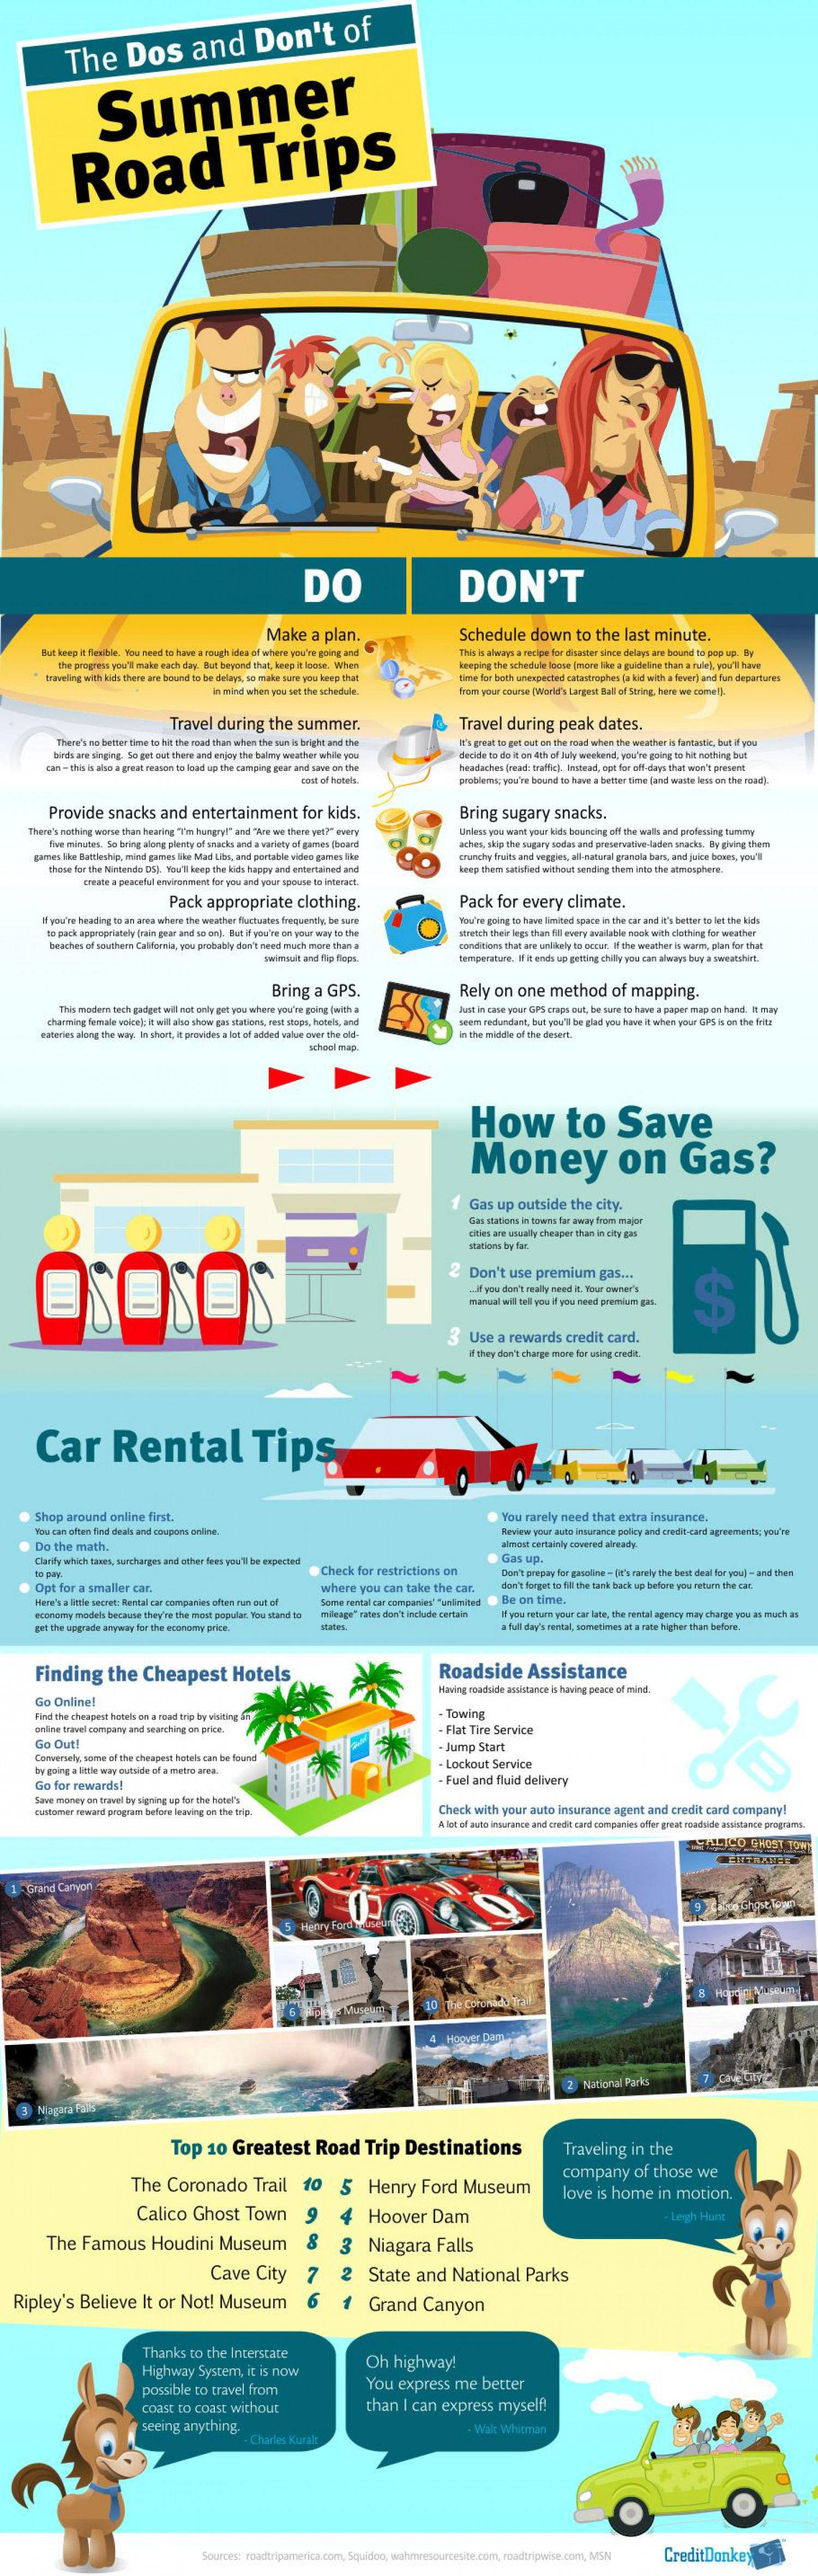 The Dos and Don't of Summer Road Trips Infographic